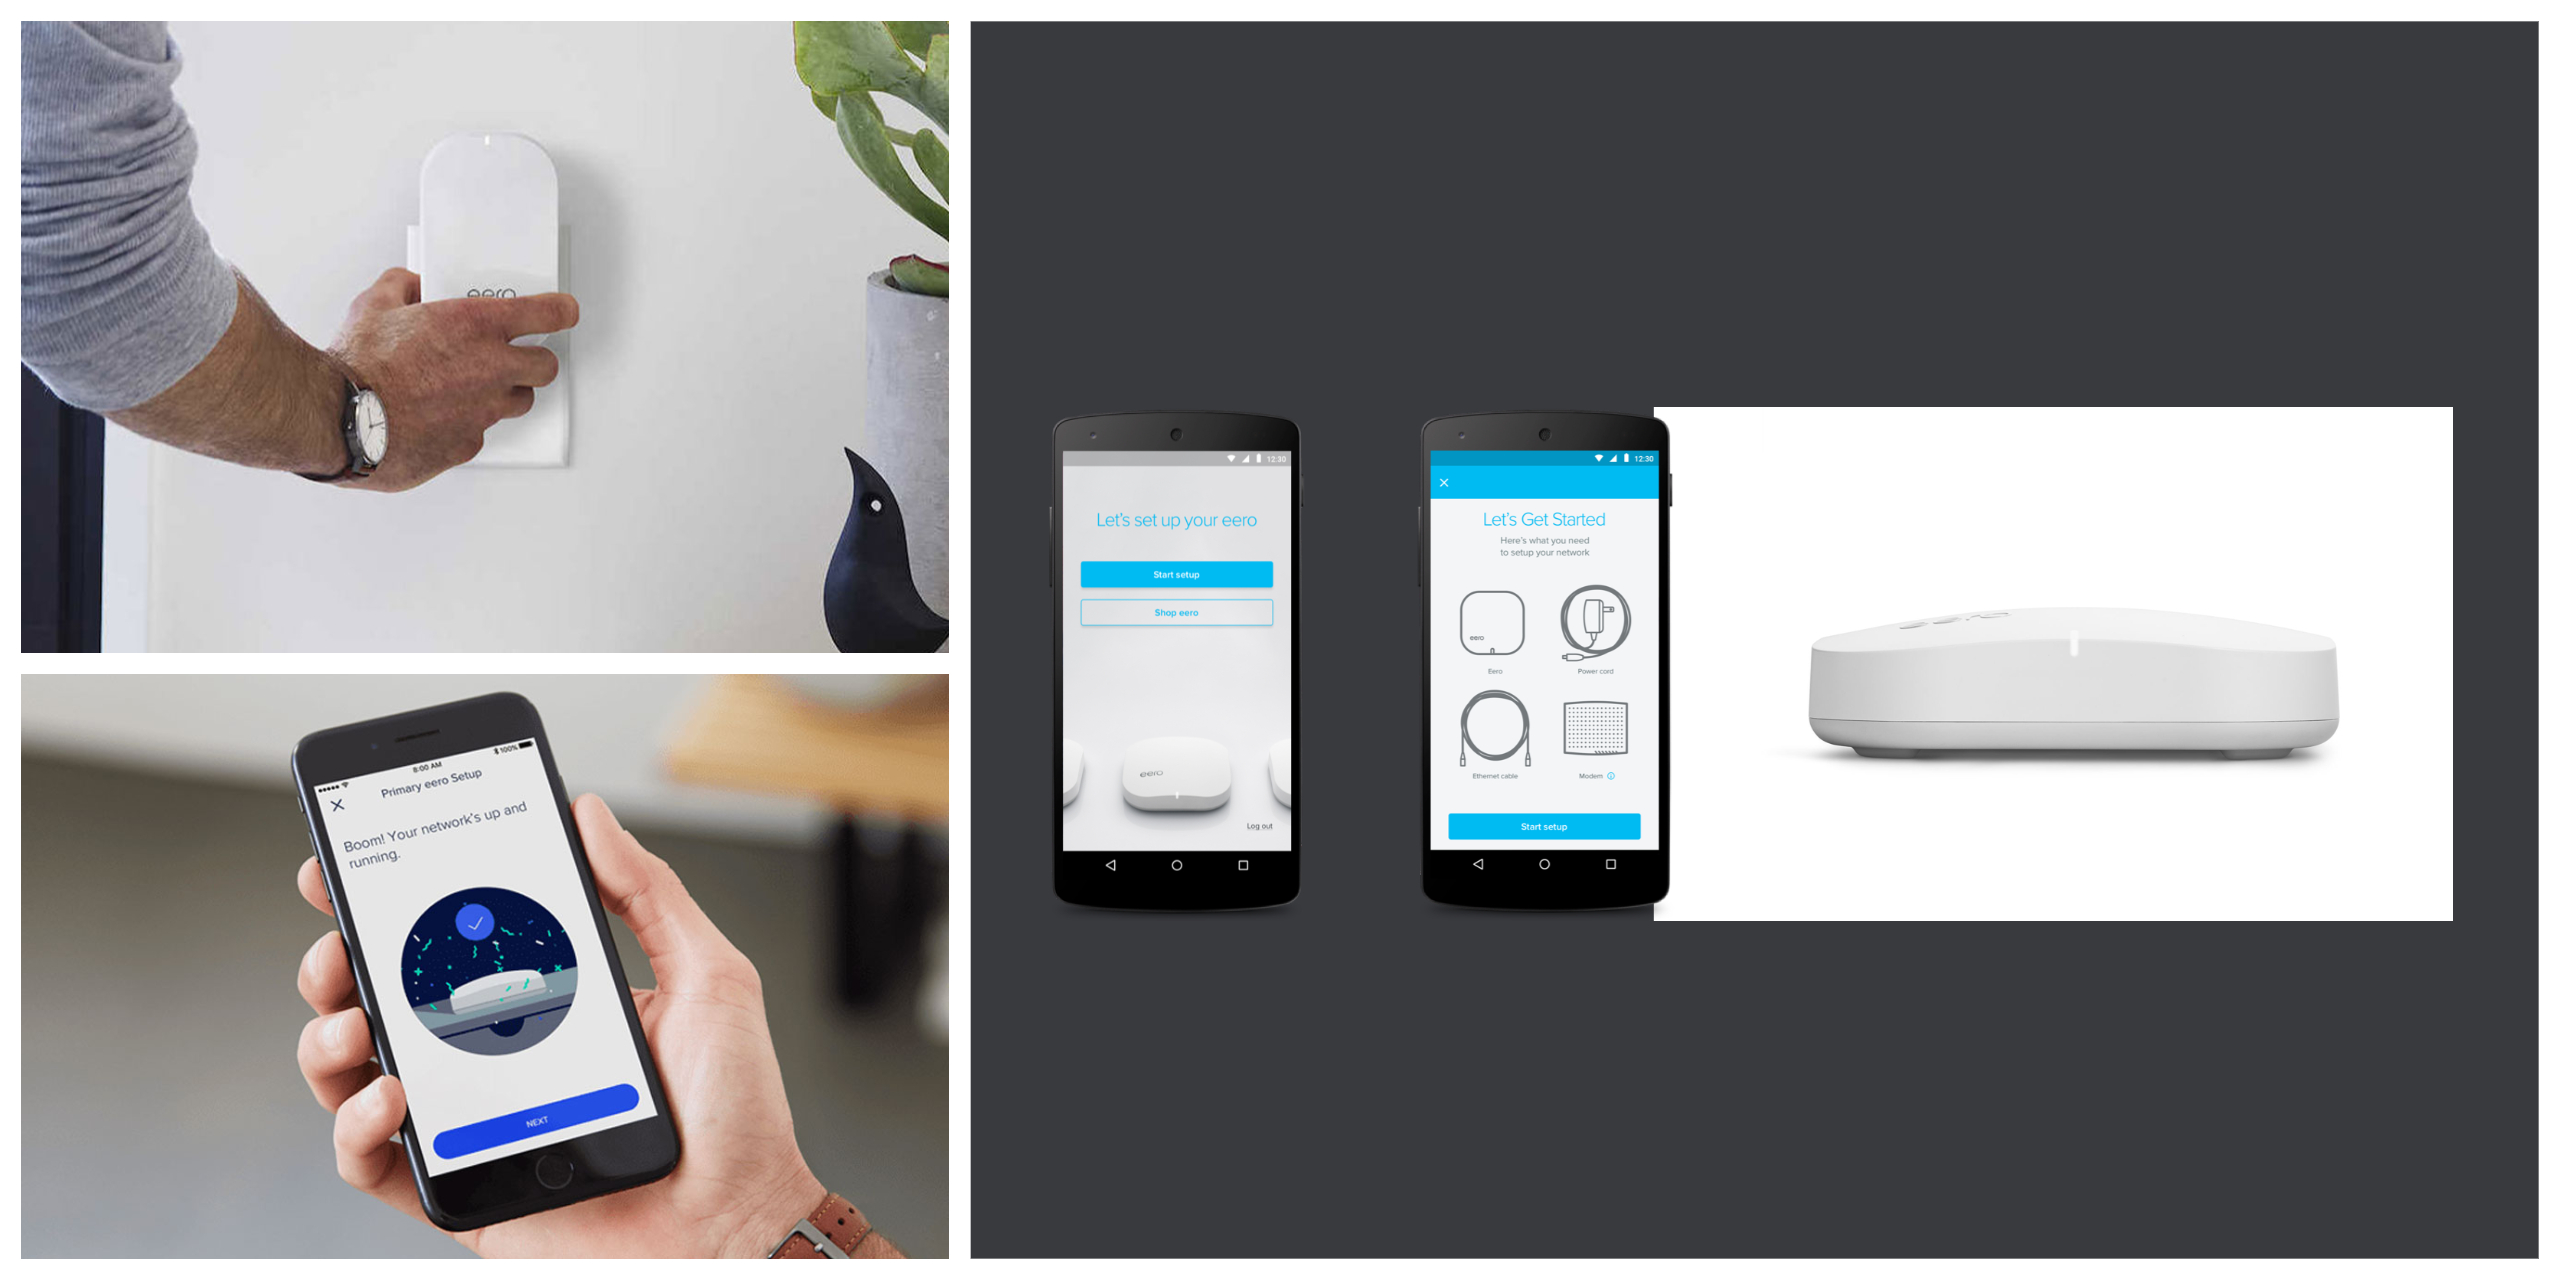 Mutual Mobile Demo - eero Home WiFi | iOS & Android App